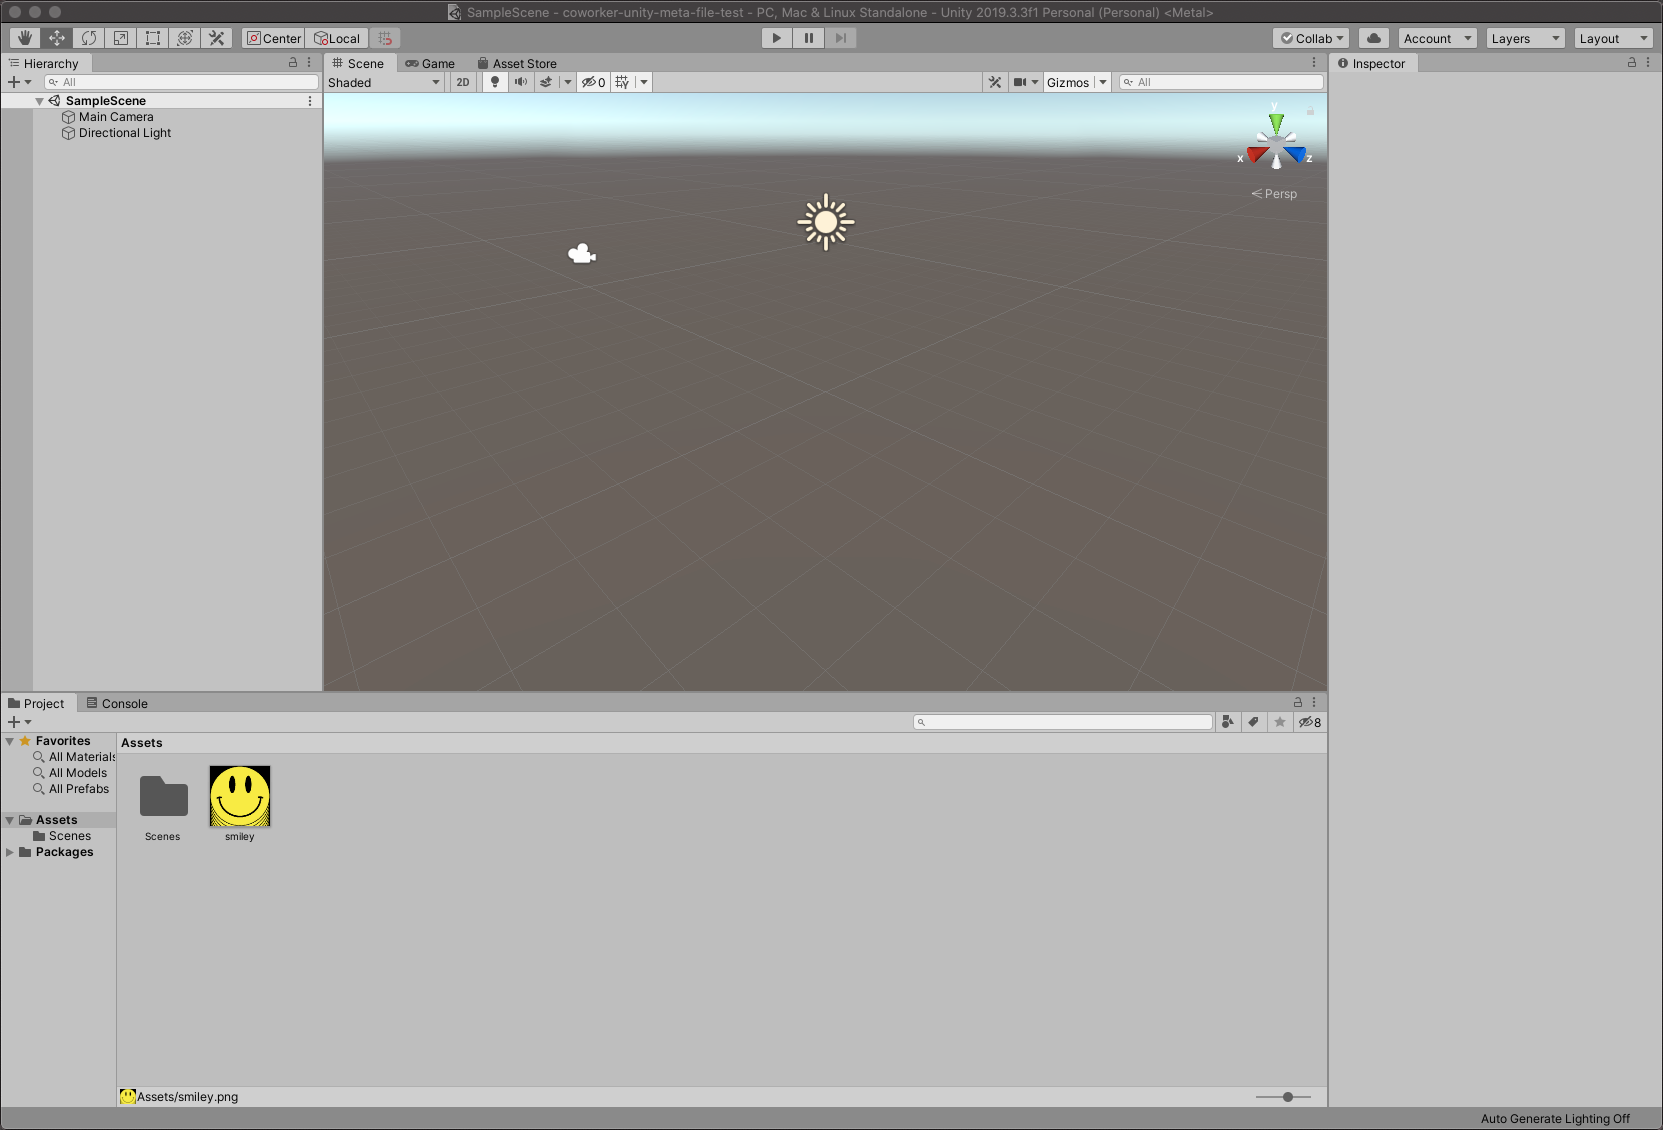 Asset shown in Unity Editor